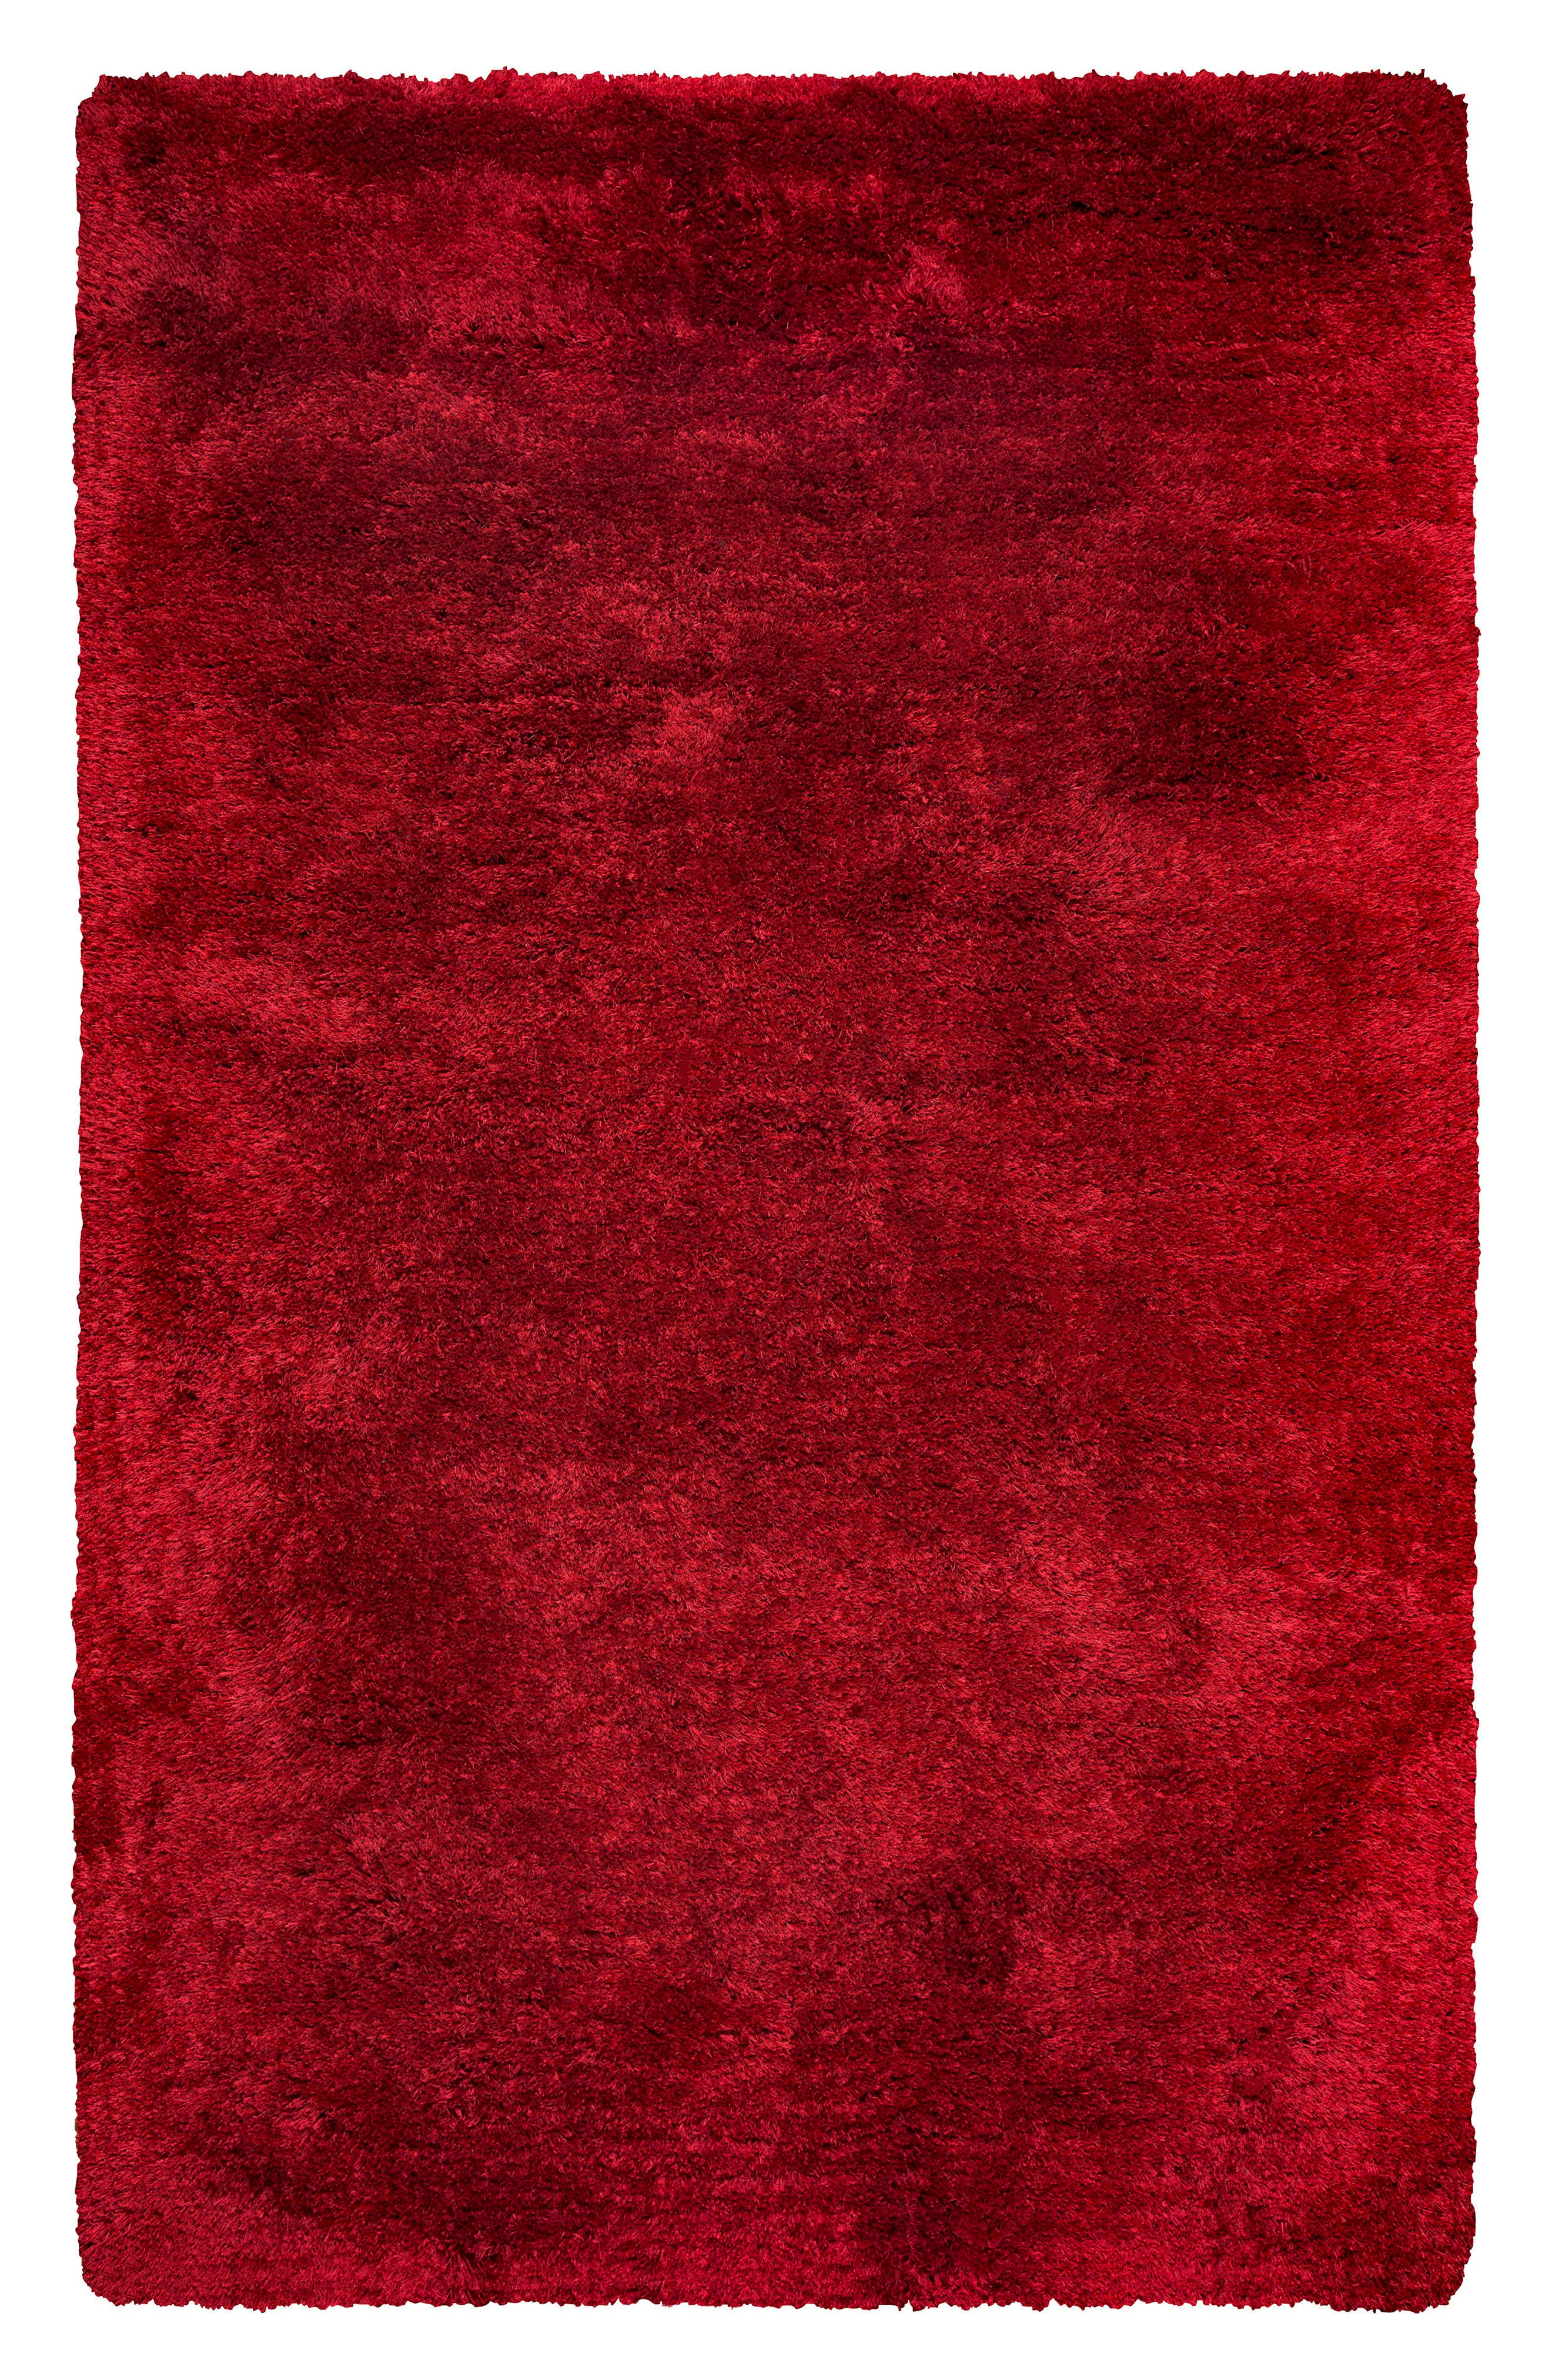 Rizzy Home Plush Shag Hand Tufted Area Rug